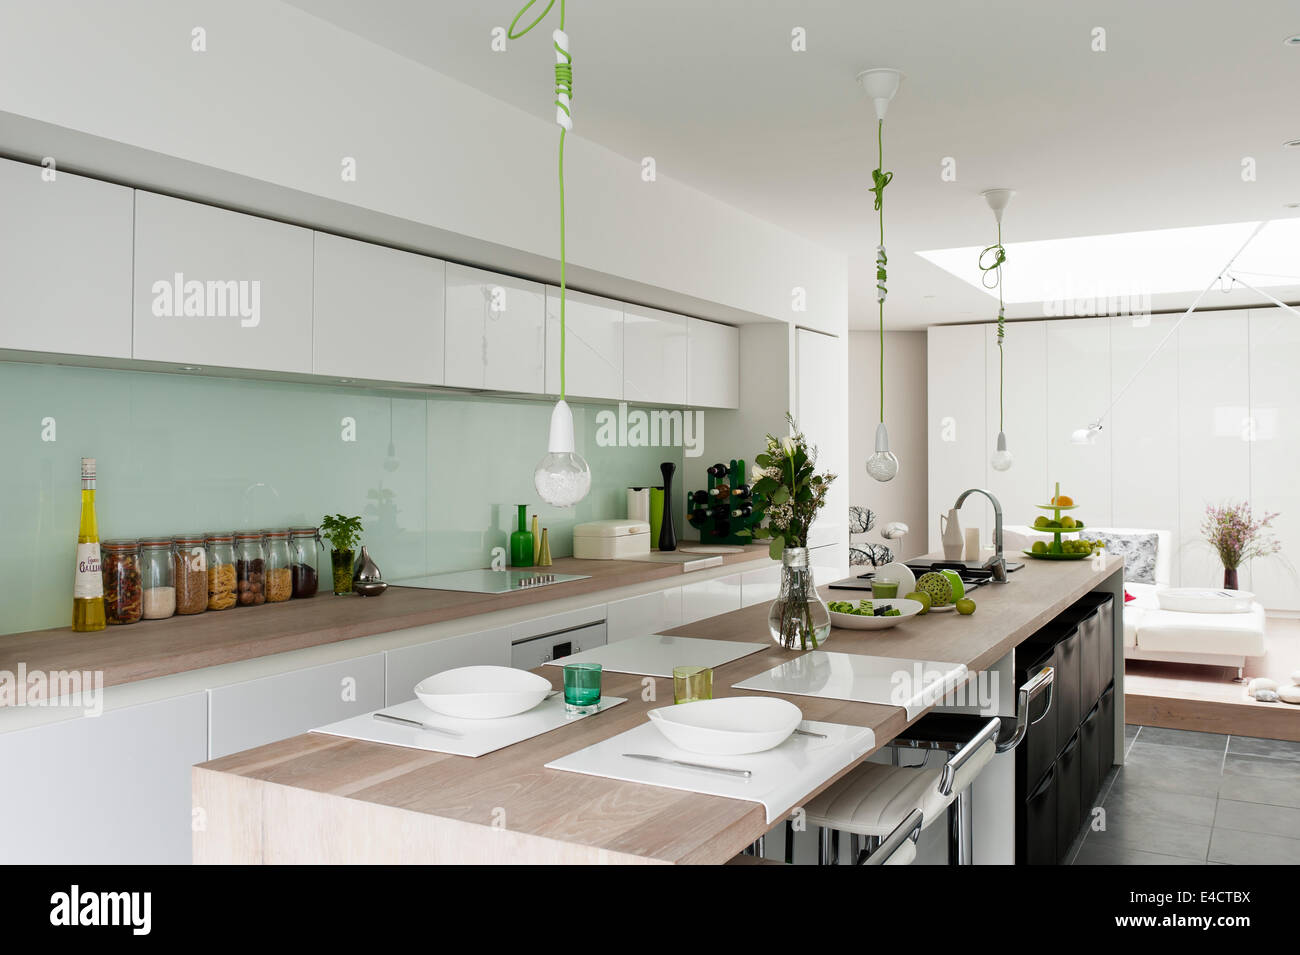 Modern kitchen from beeck kuechen the green corded pendant lights the green corded pendant lights are by nud and the barstools by dwell aloadofball Images